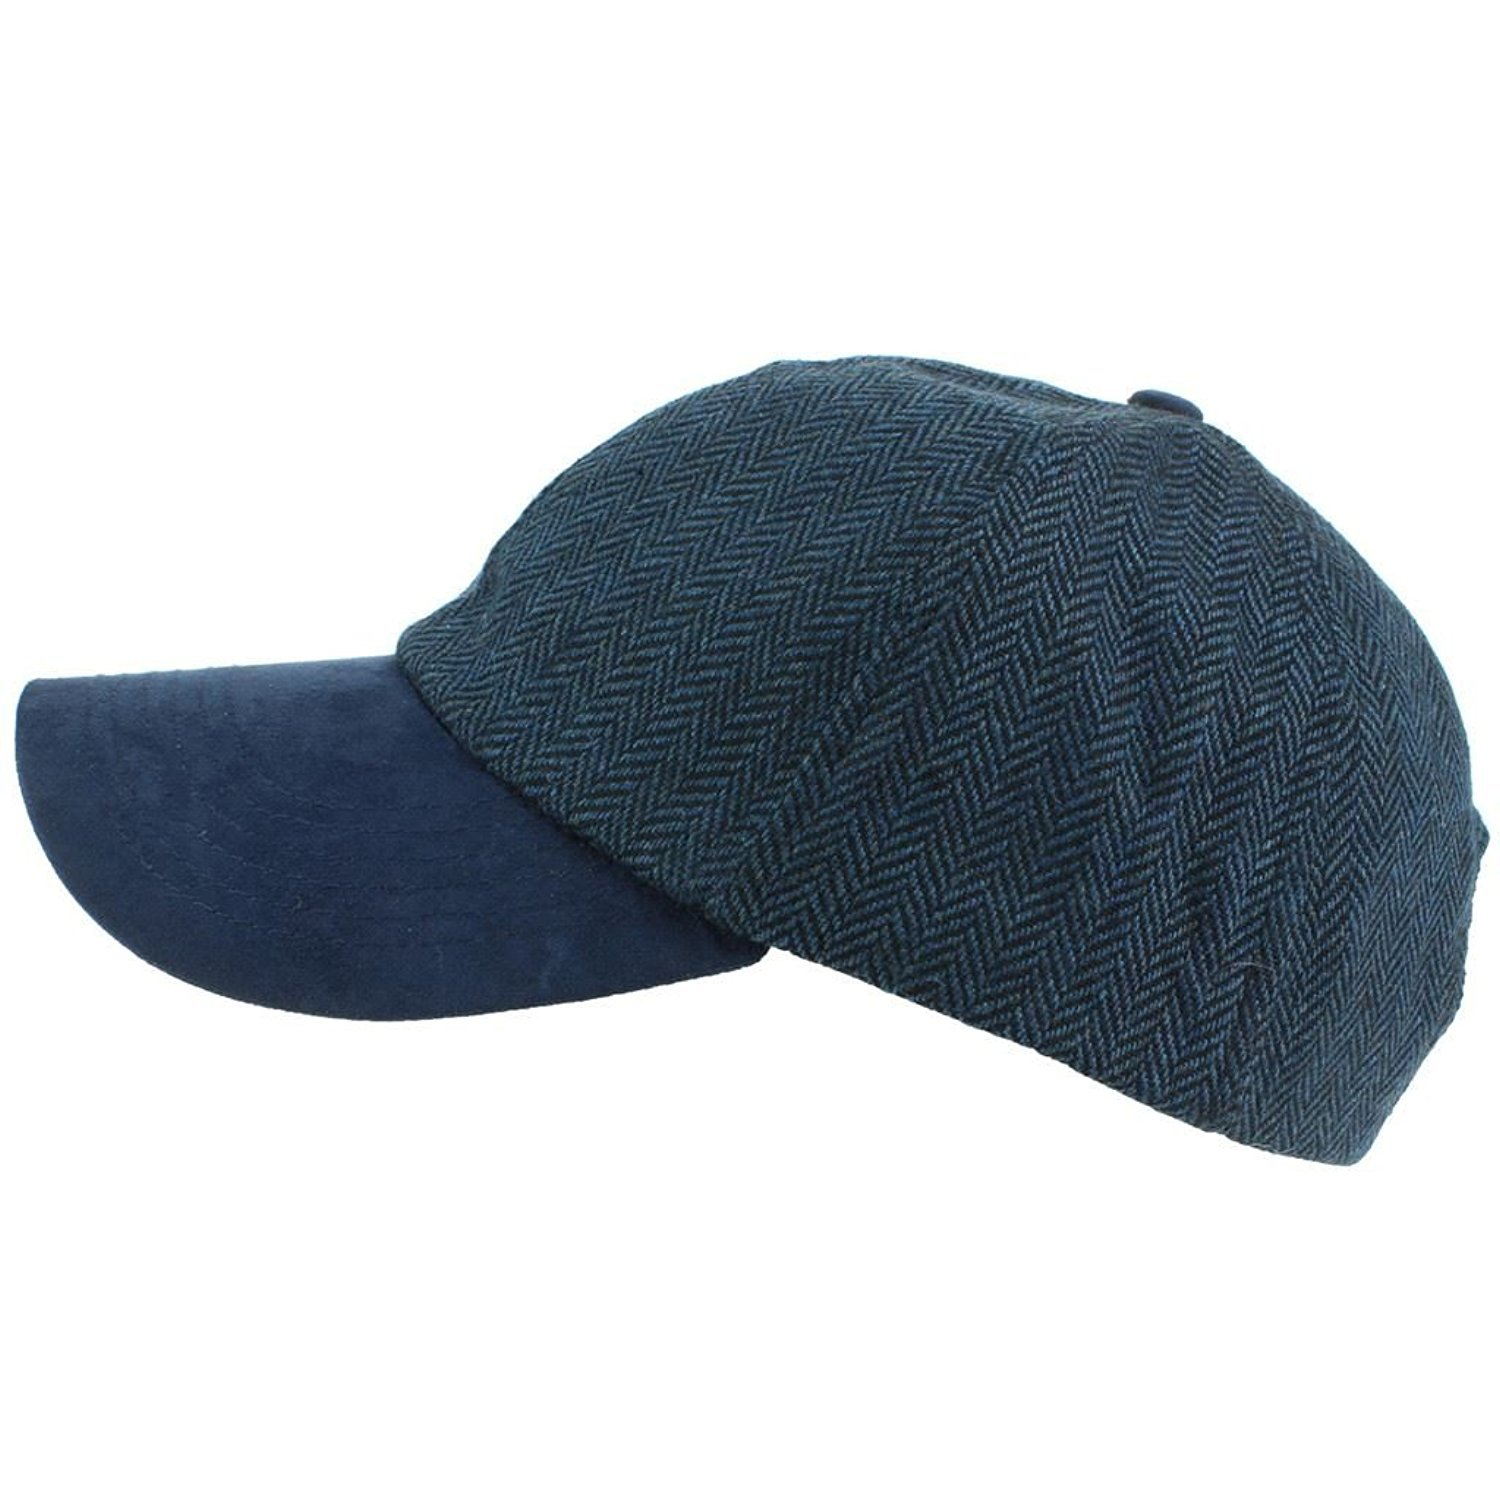 8b5ec64b736 Hawkins Wool Tweed Herringbone Baseball Cap - Blue  Amazon.co.uk  Clothing